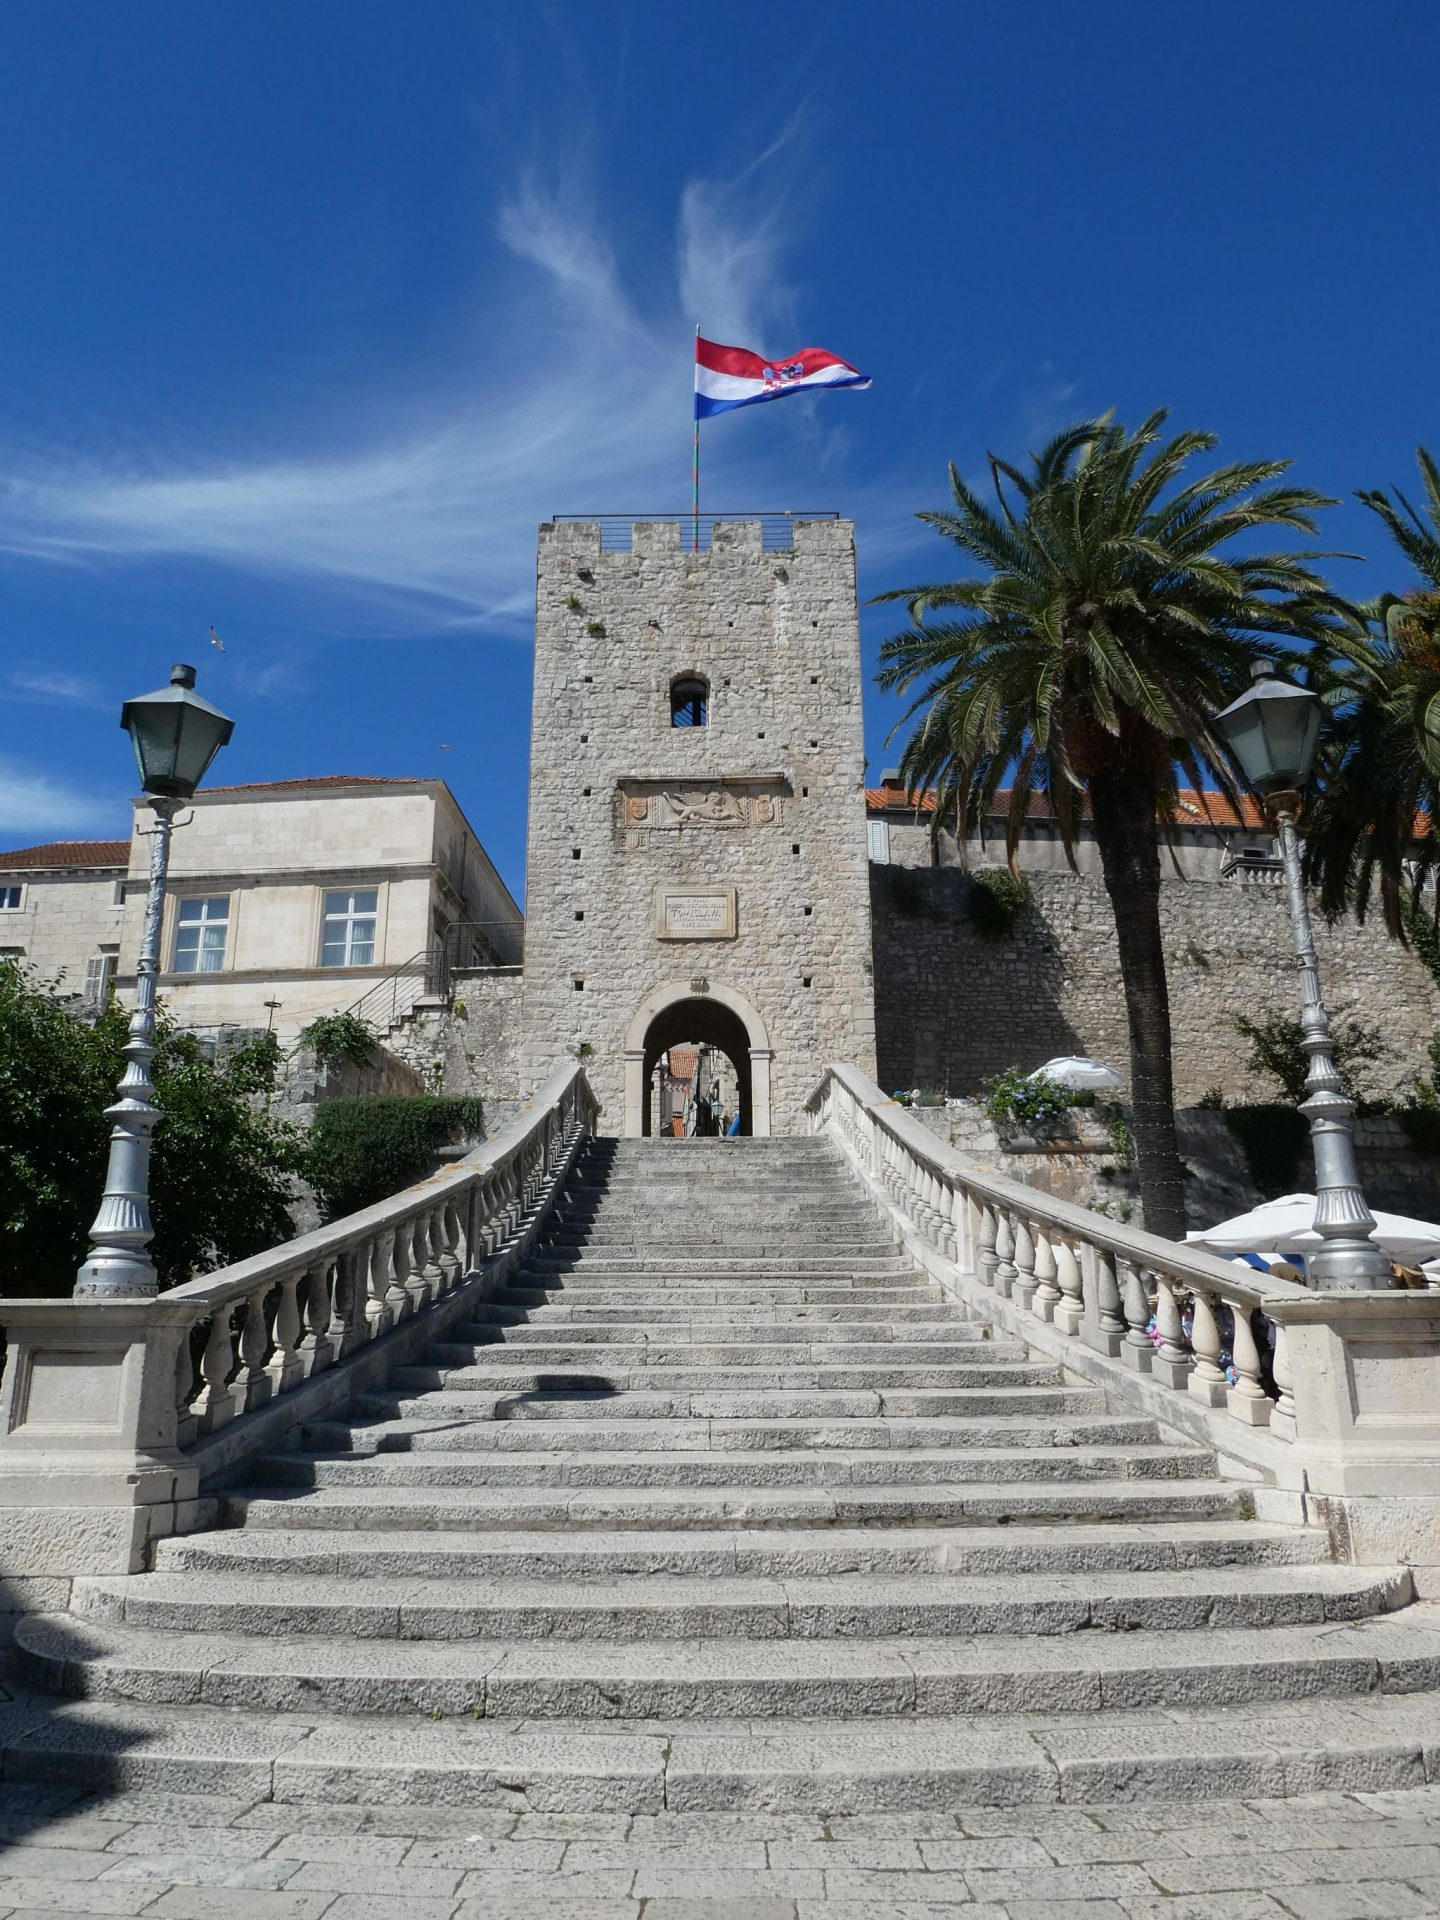 Korcula (23 and 24 June 2018)